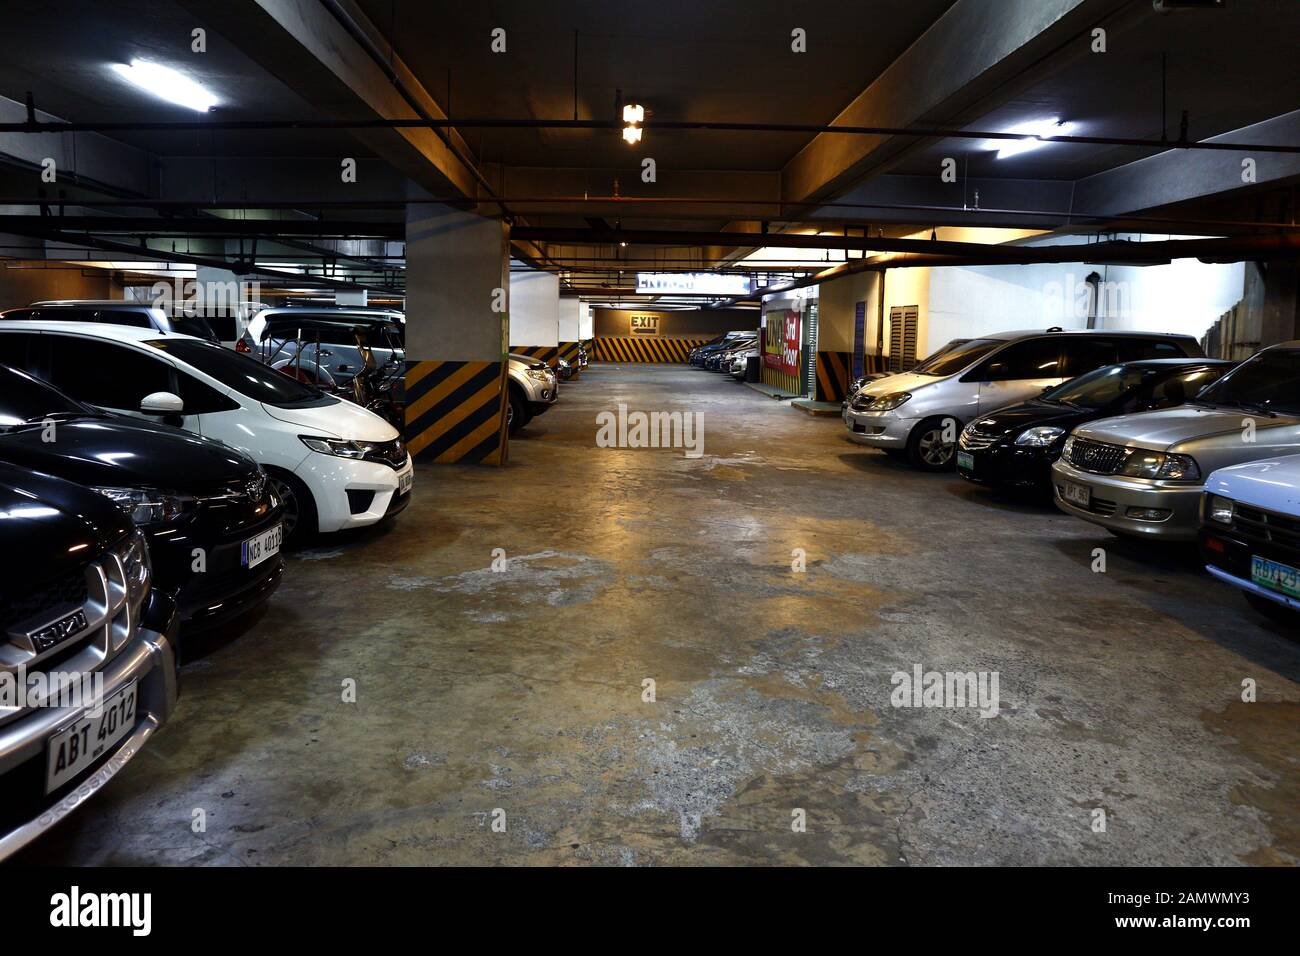 Basement Car Park High Resolution Stock Photography And Images Alamy